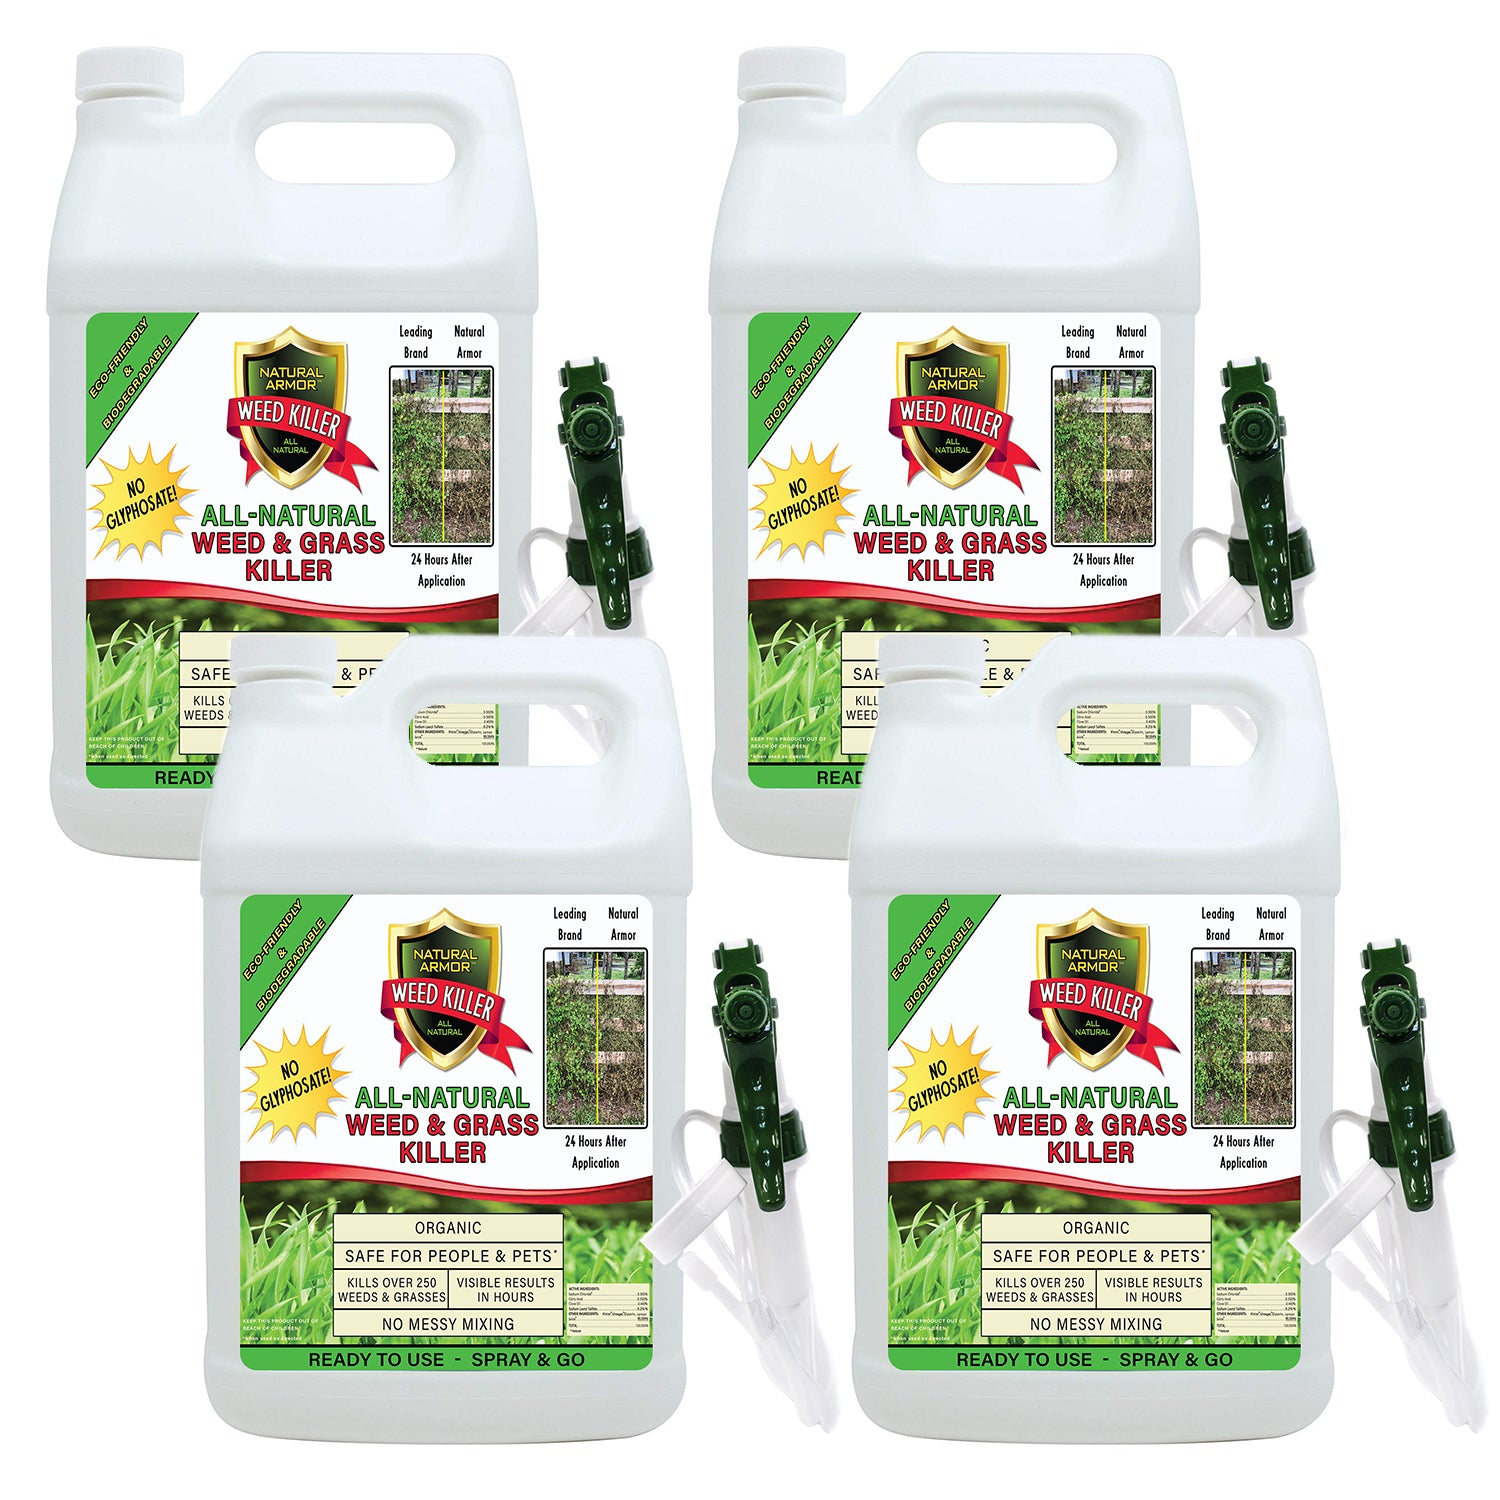 Natural Armor All-Natural Weed Killer - CASE OF 4 GALLONS